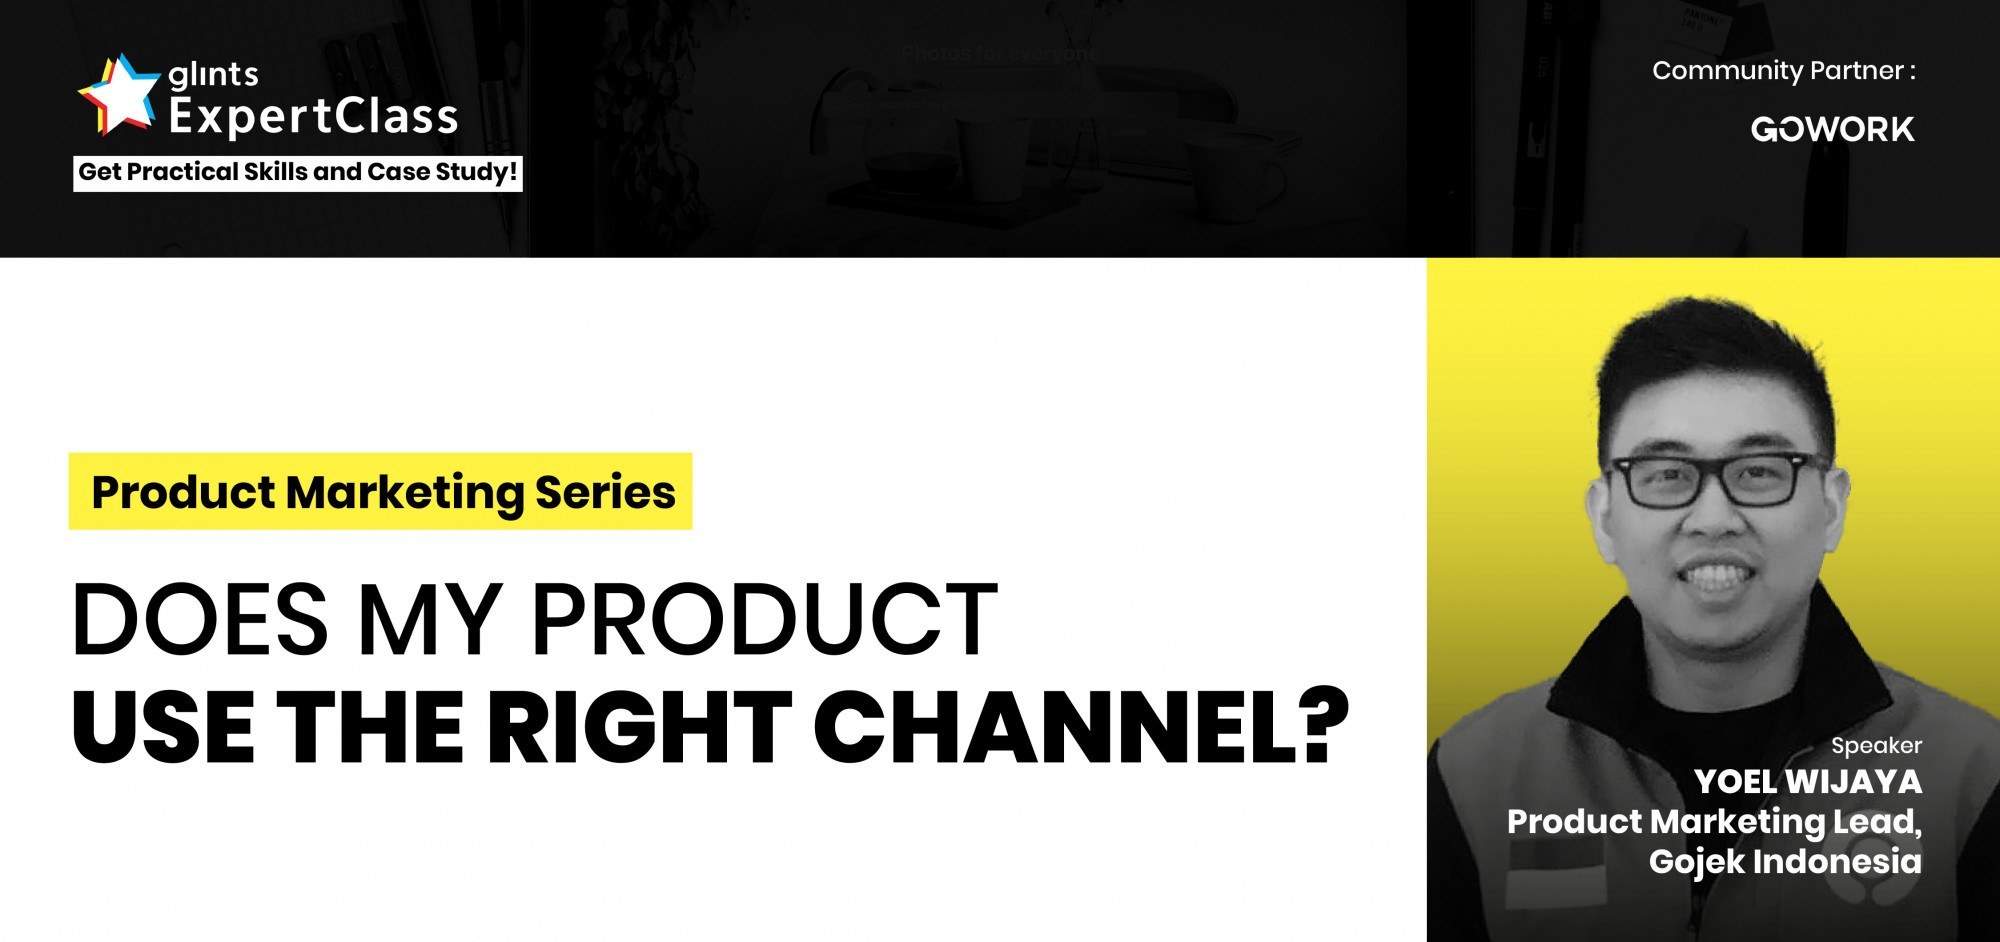 [Online Glints ExpertClass] Reality Check: Does My Product Use the Right Channel?